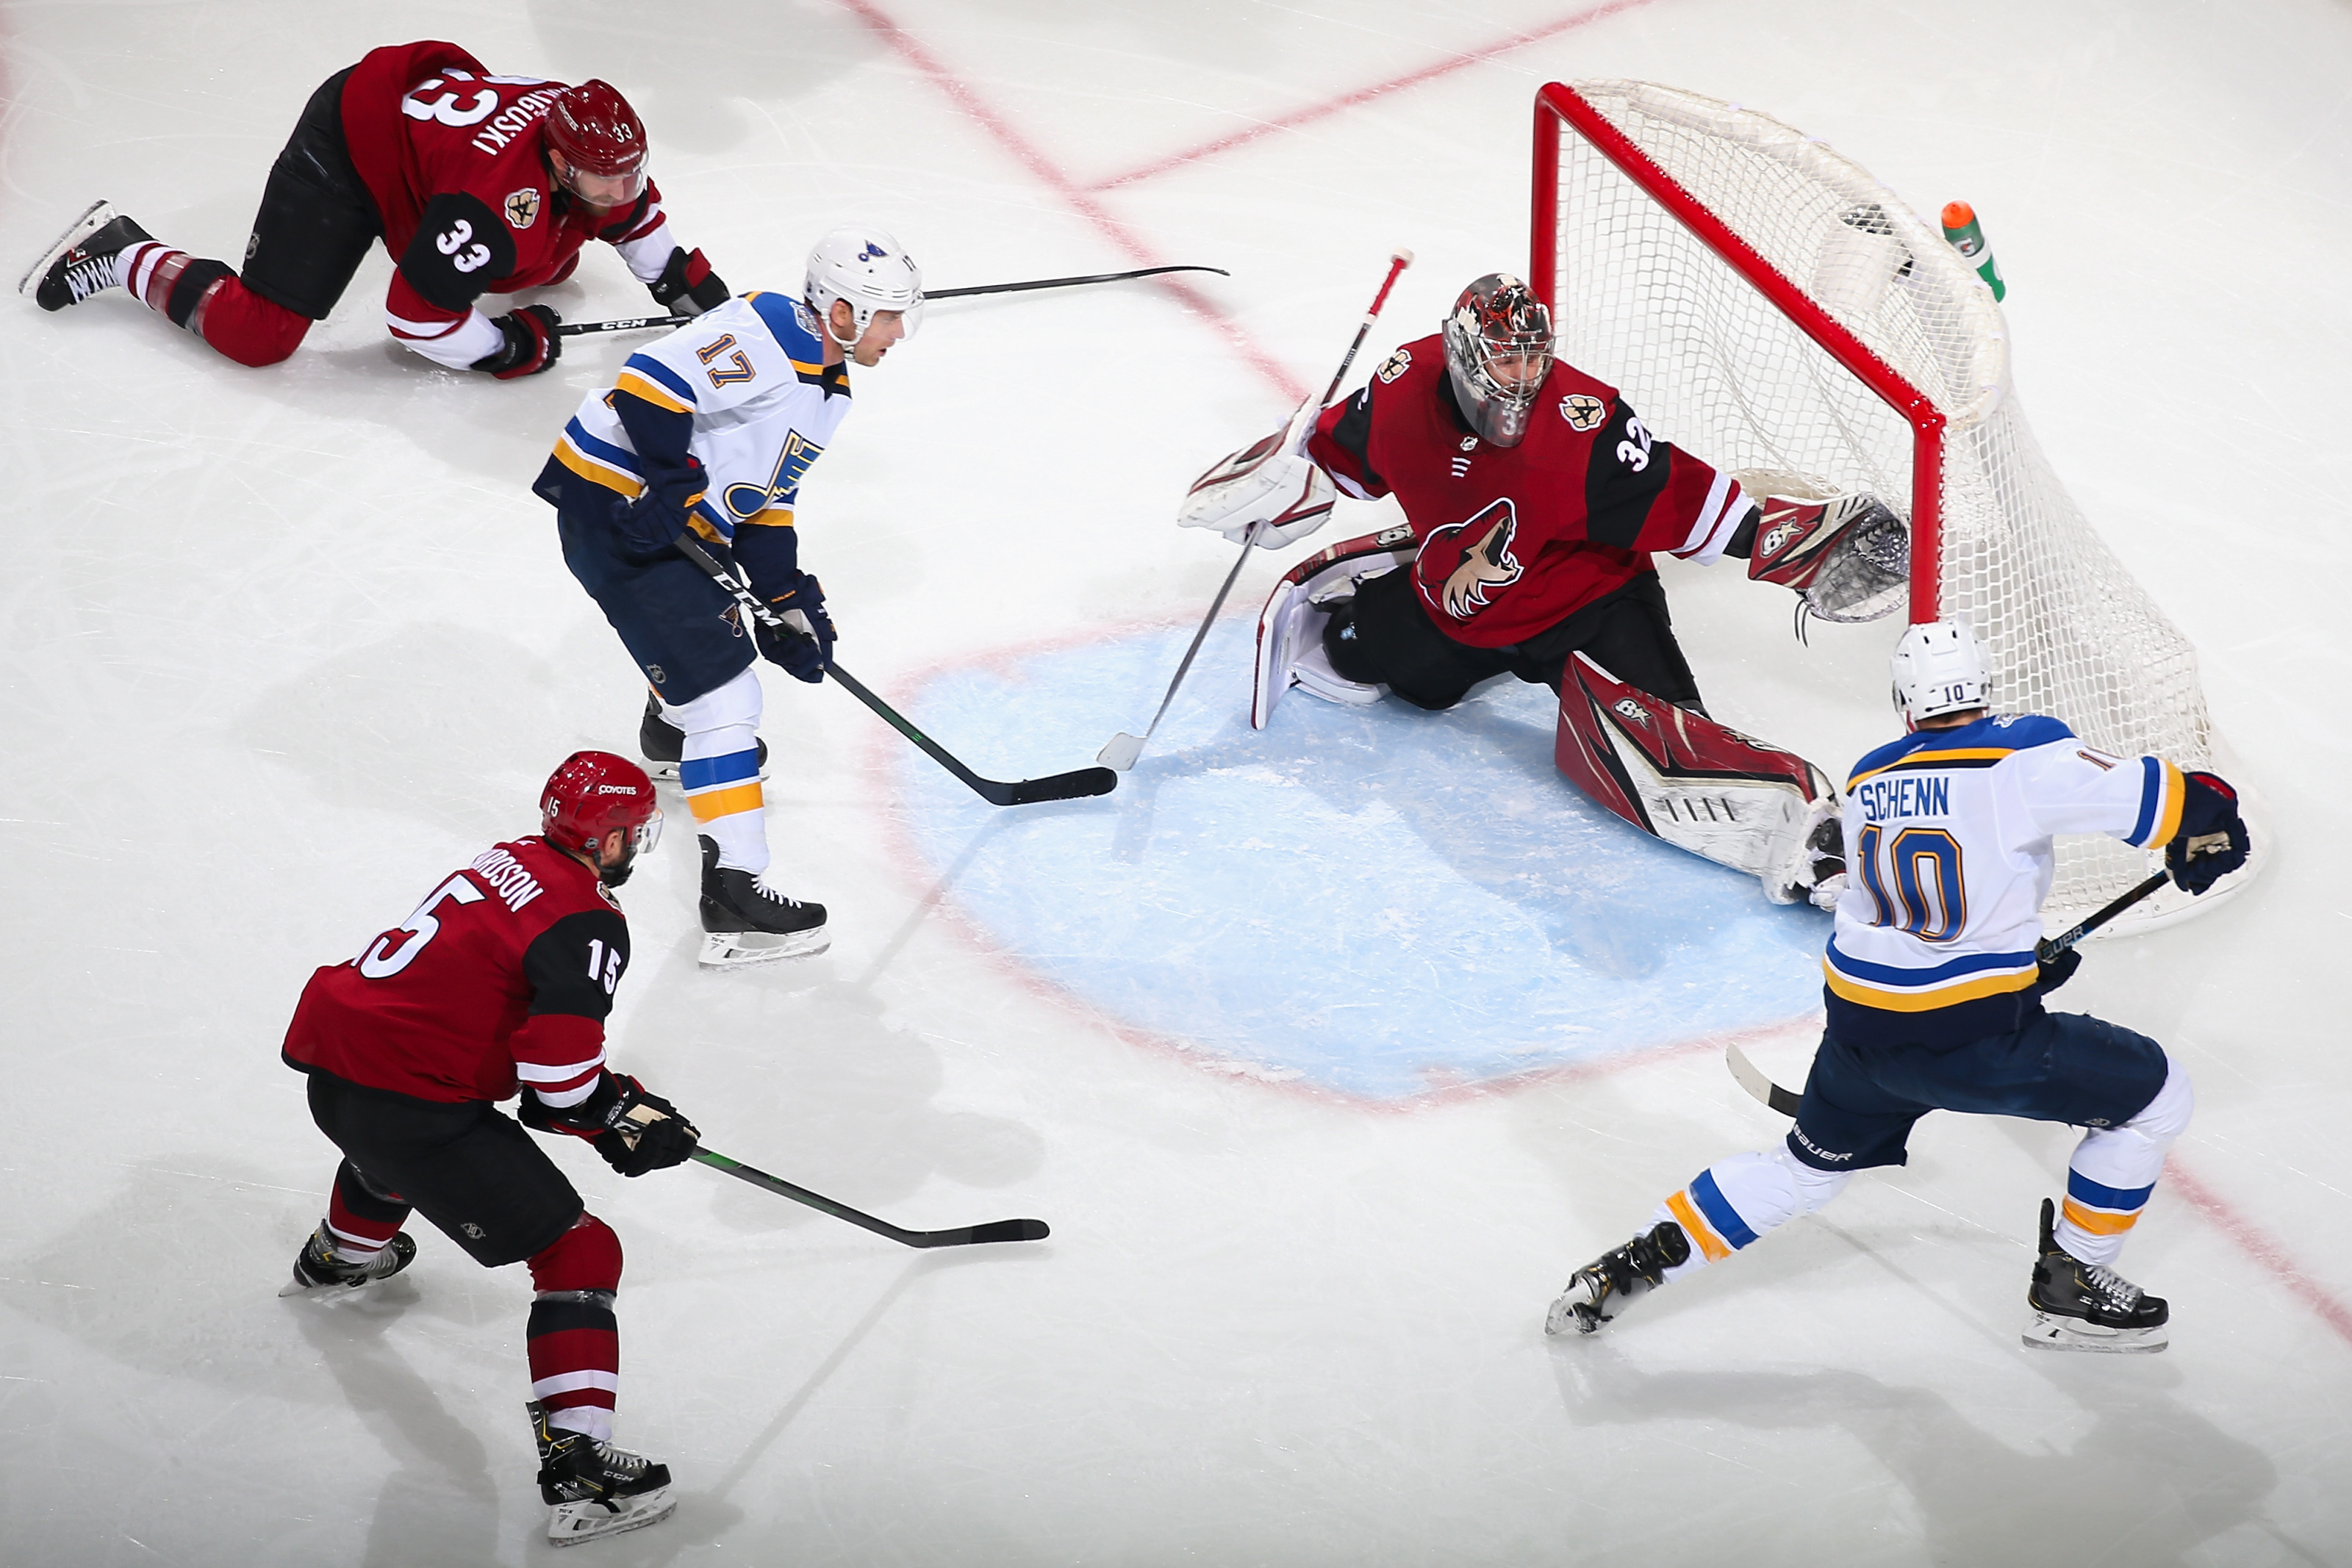 St. Louis Blues Hoping To Face Wile E. Coyote, Not Arizona Coyotes